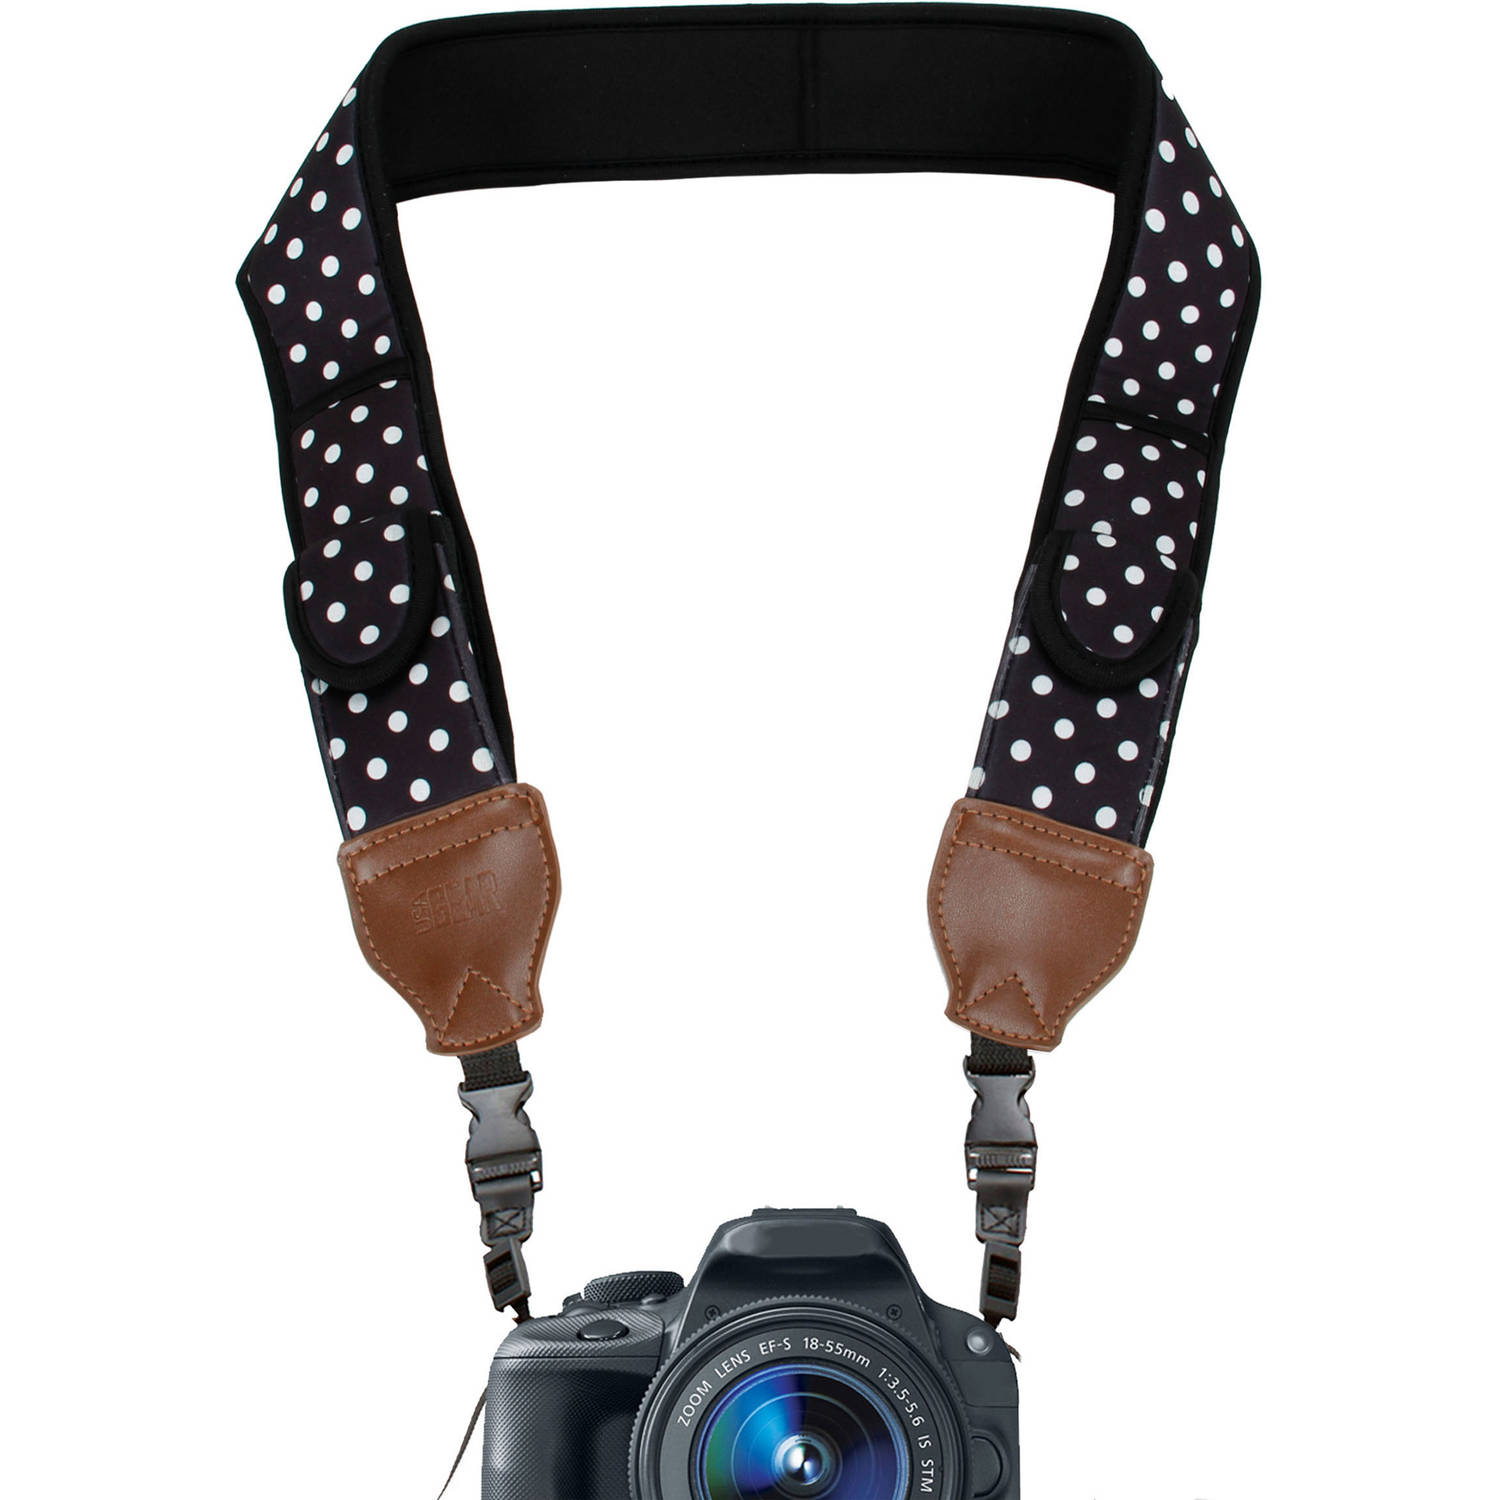 Comfort Digital Camera Neck Strap with Neoprene Cushion Padding & Storage Pockets by USA Gear - Works with Canon , Nikon , Sony and More Cameras